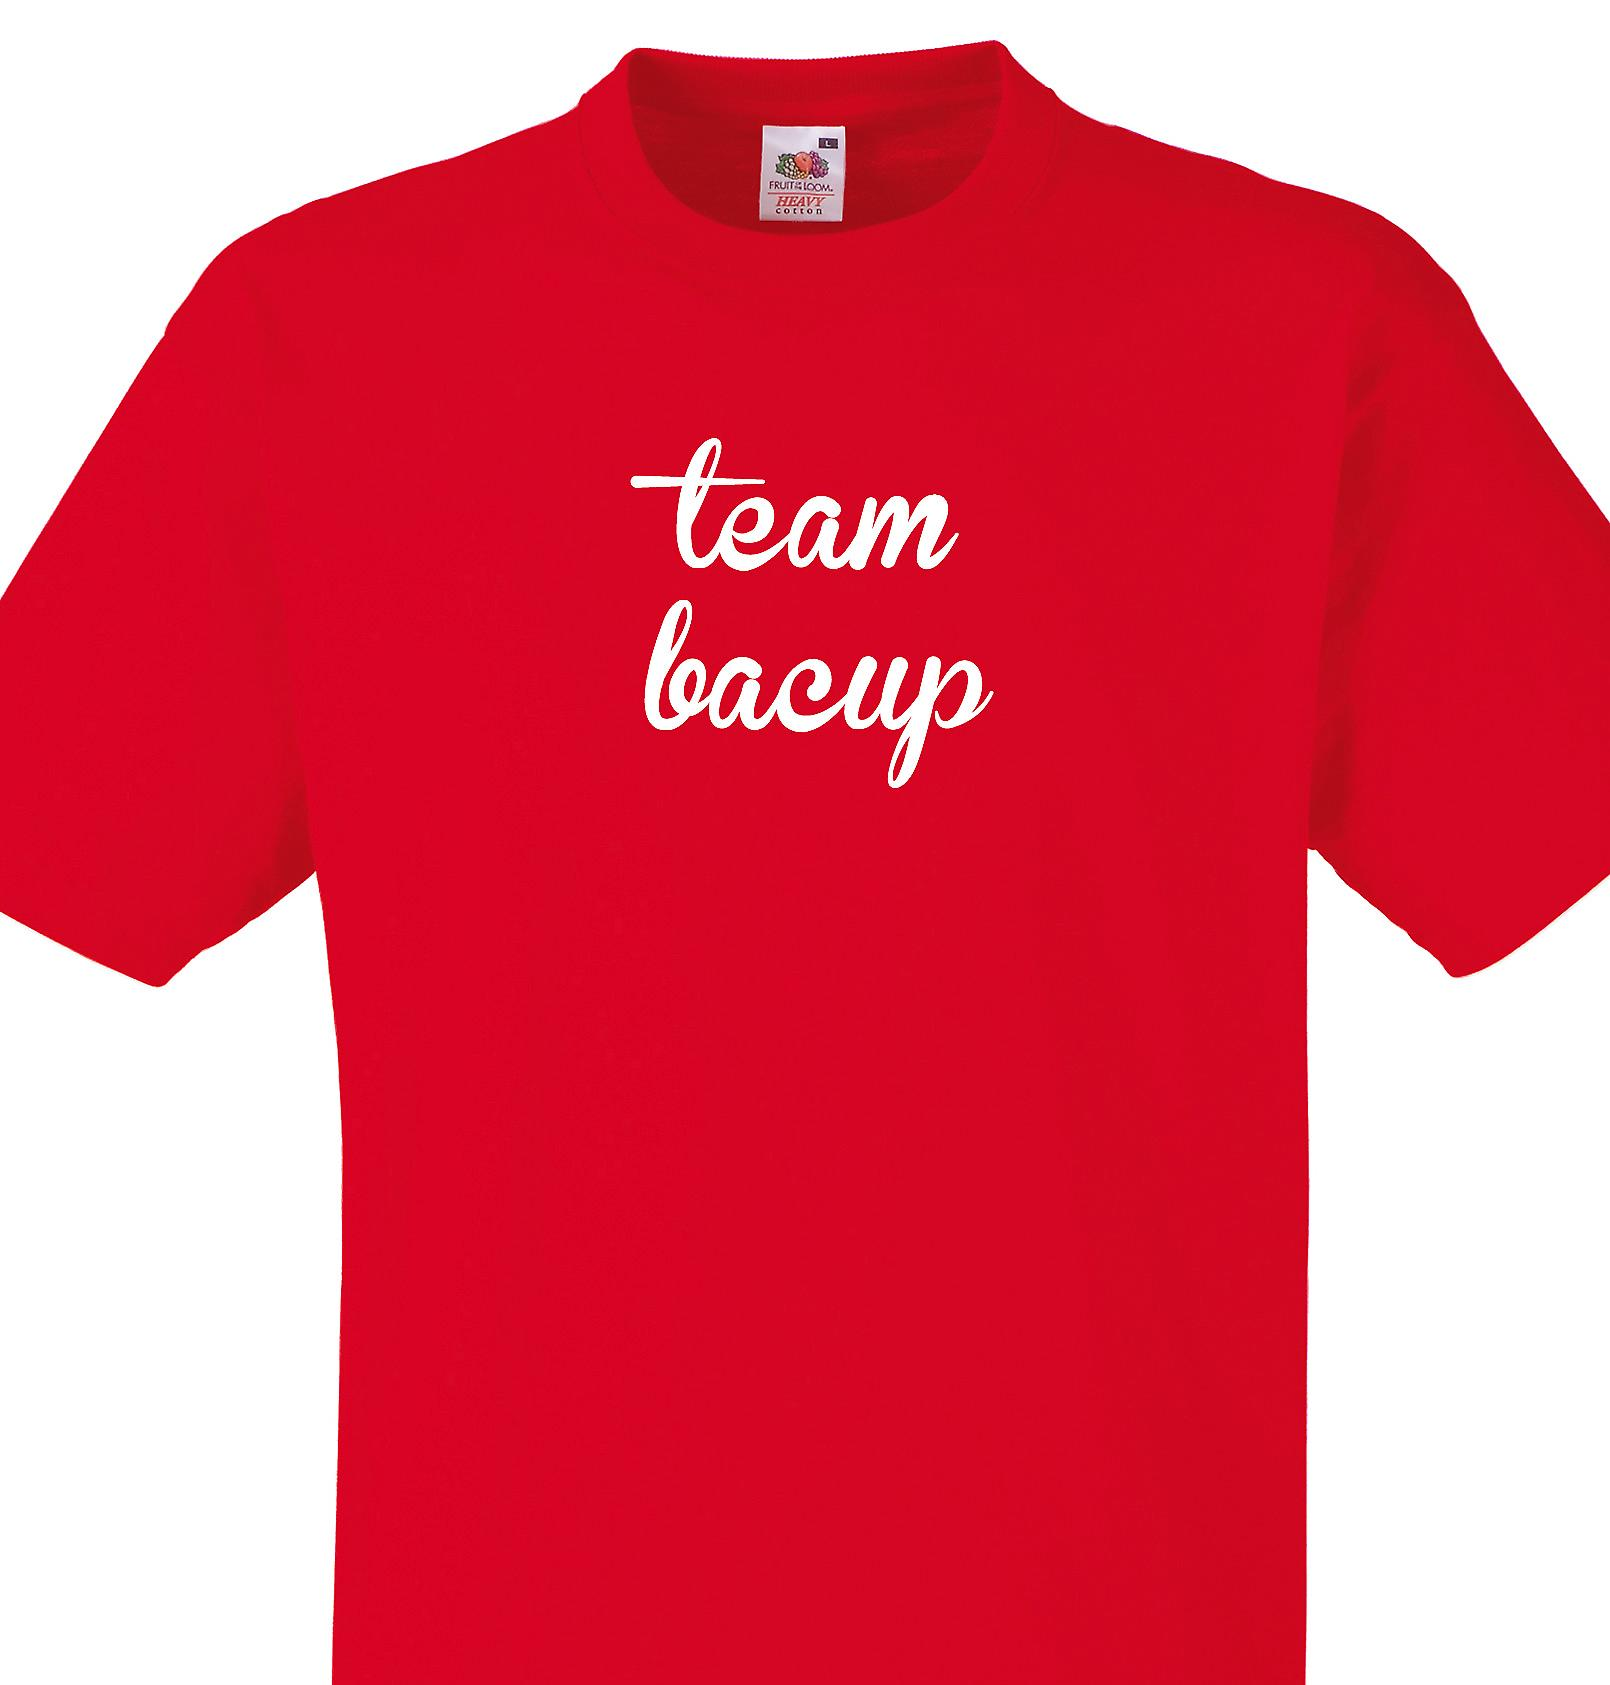 Team Bacup Red T shirt